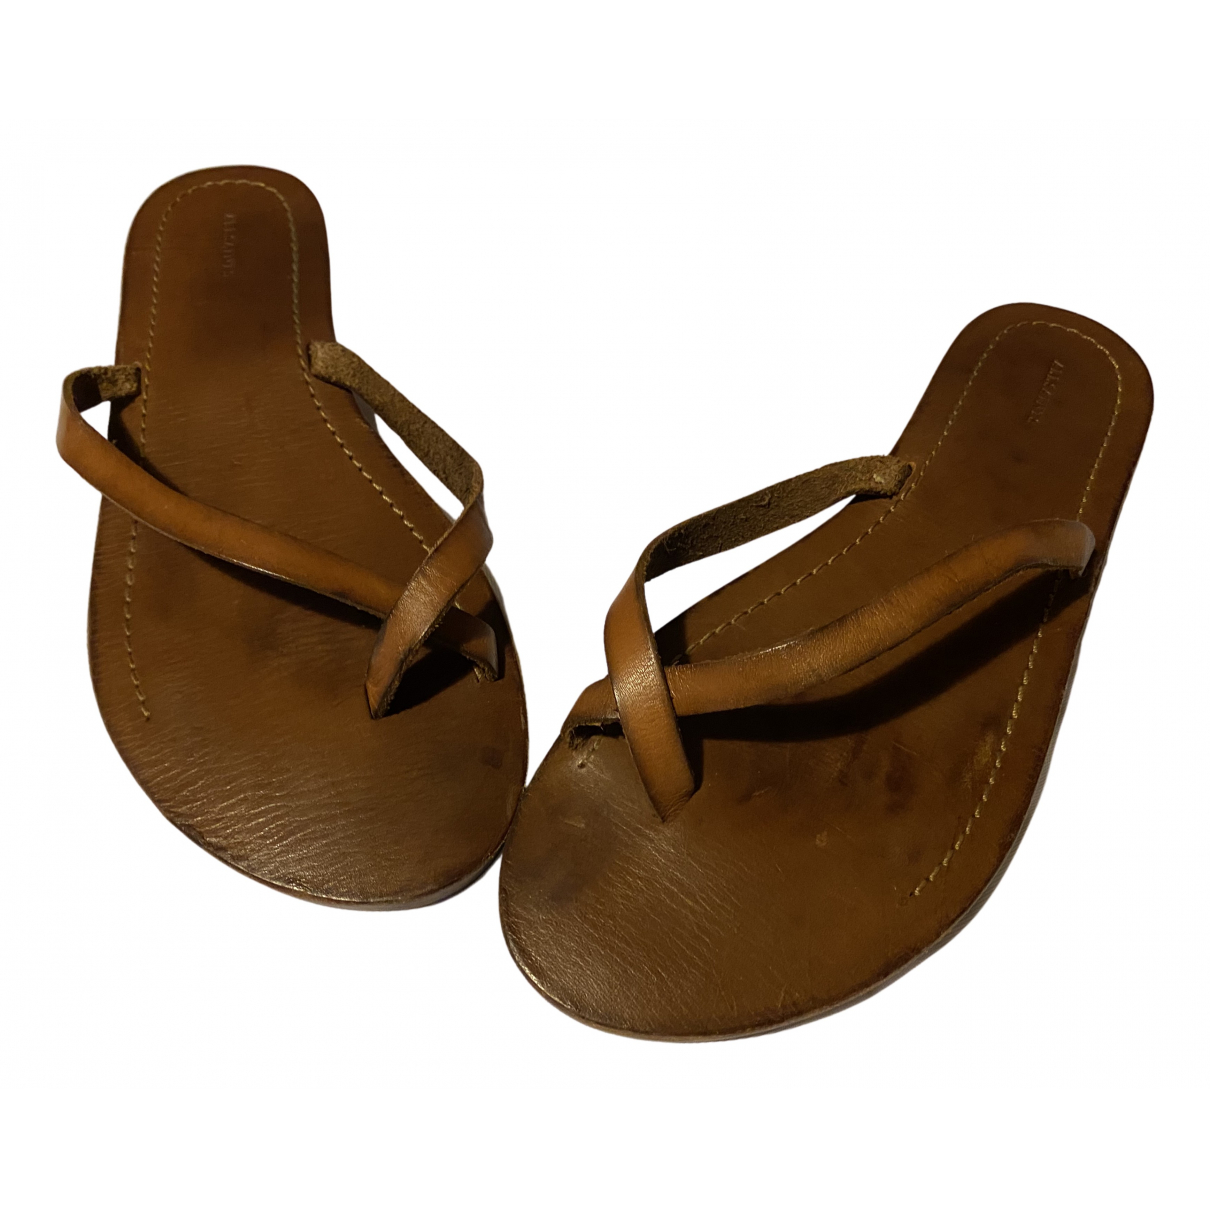 All Saints N Brown Leather Sandals for Women 40 EU